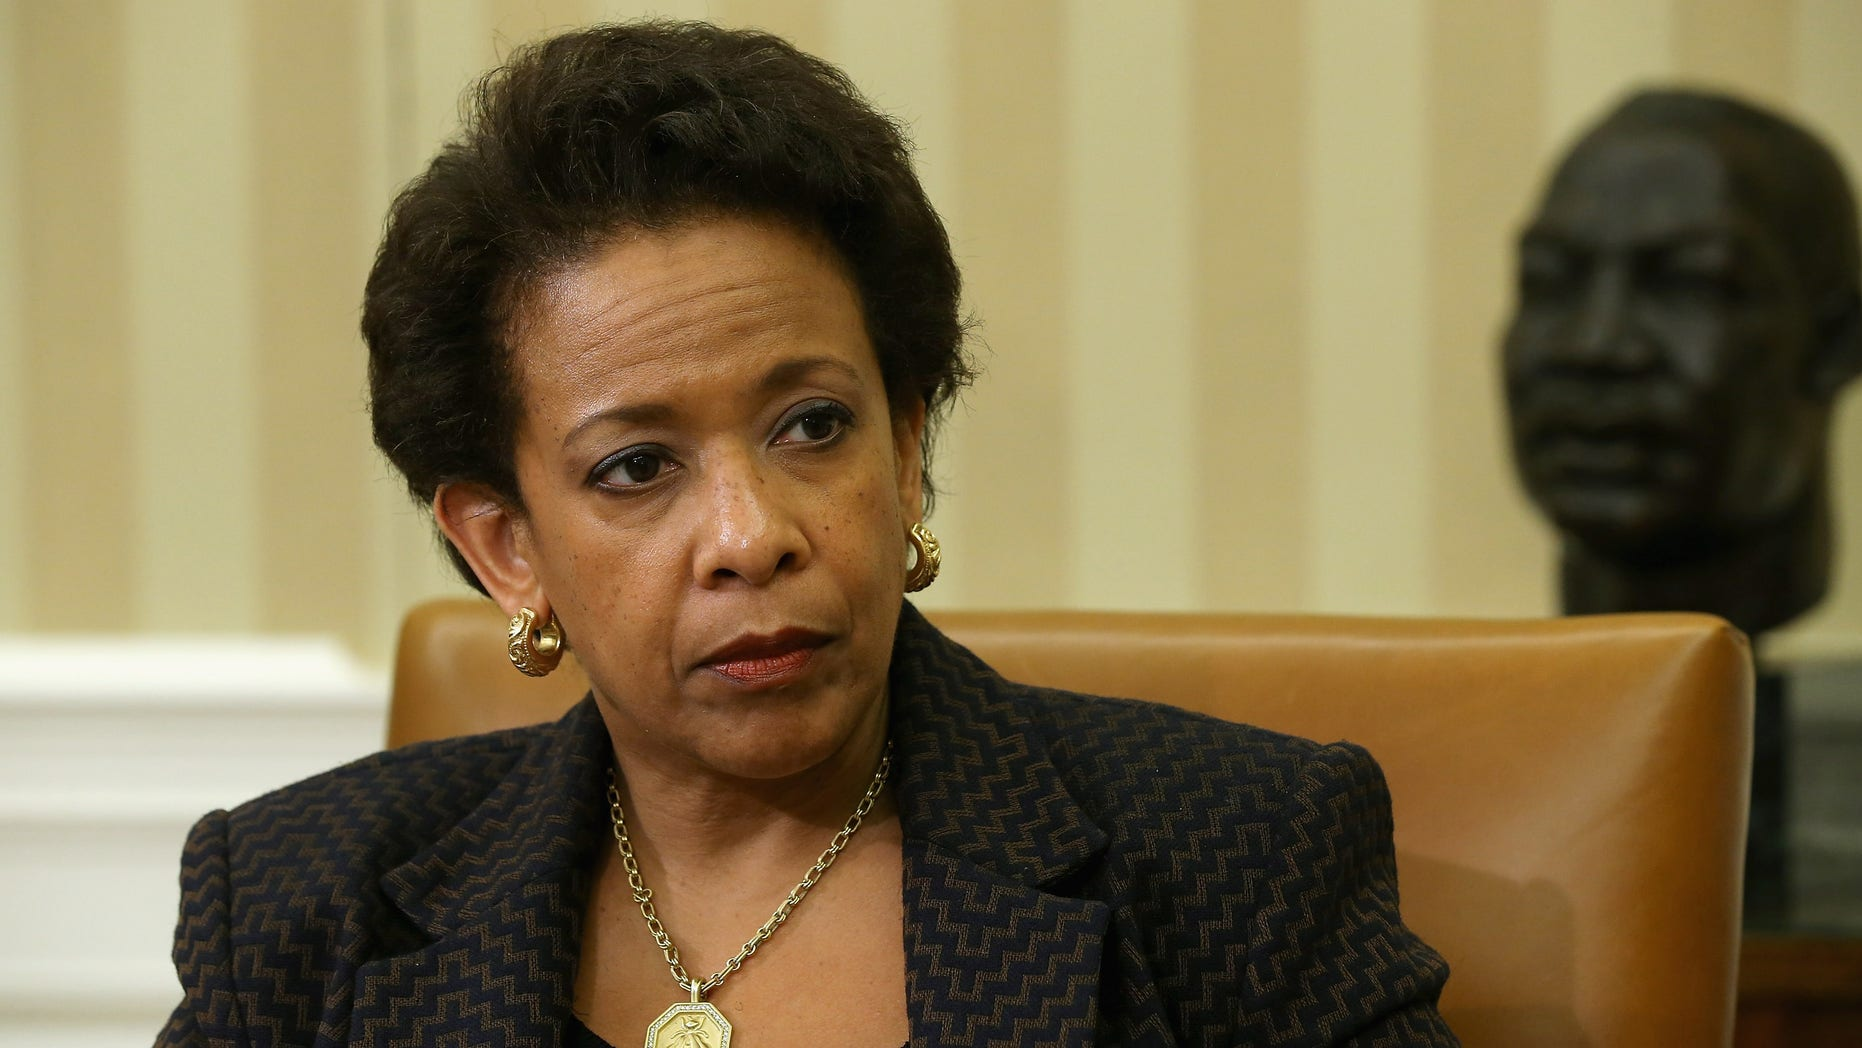 WASHINGTON, DC - MAY 29:  U.S. Attorney General Loretta Lynch listens to President Barack Obama as he delivers remarks to reporters after a meeting in the Oval Office at the White House May 29, 2015 in Washington, DC. The first African-American woman to head the Justice Department, Lynch announced this week a major corruption investigation into FIFA, the world's largest soccer organizing body.  (Photo by Chip Somodevilla/Getty Images)